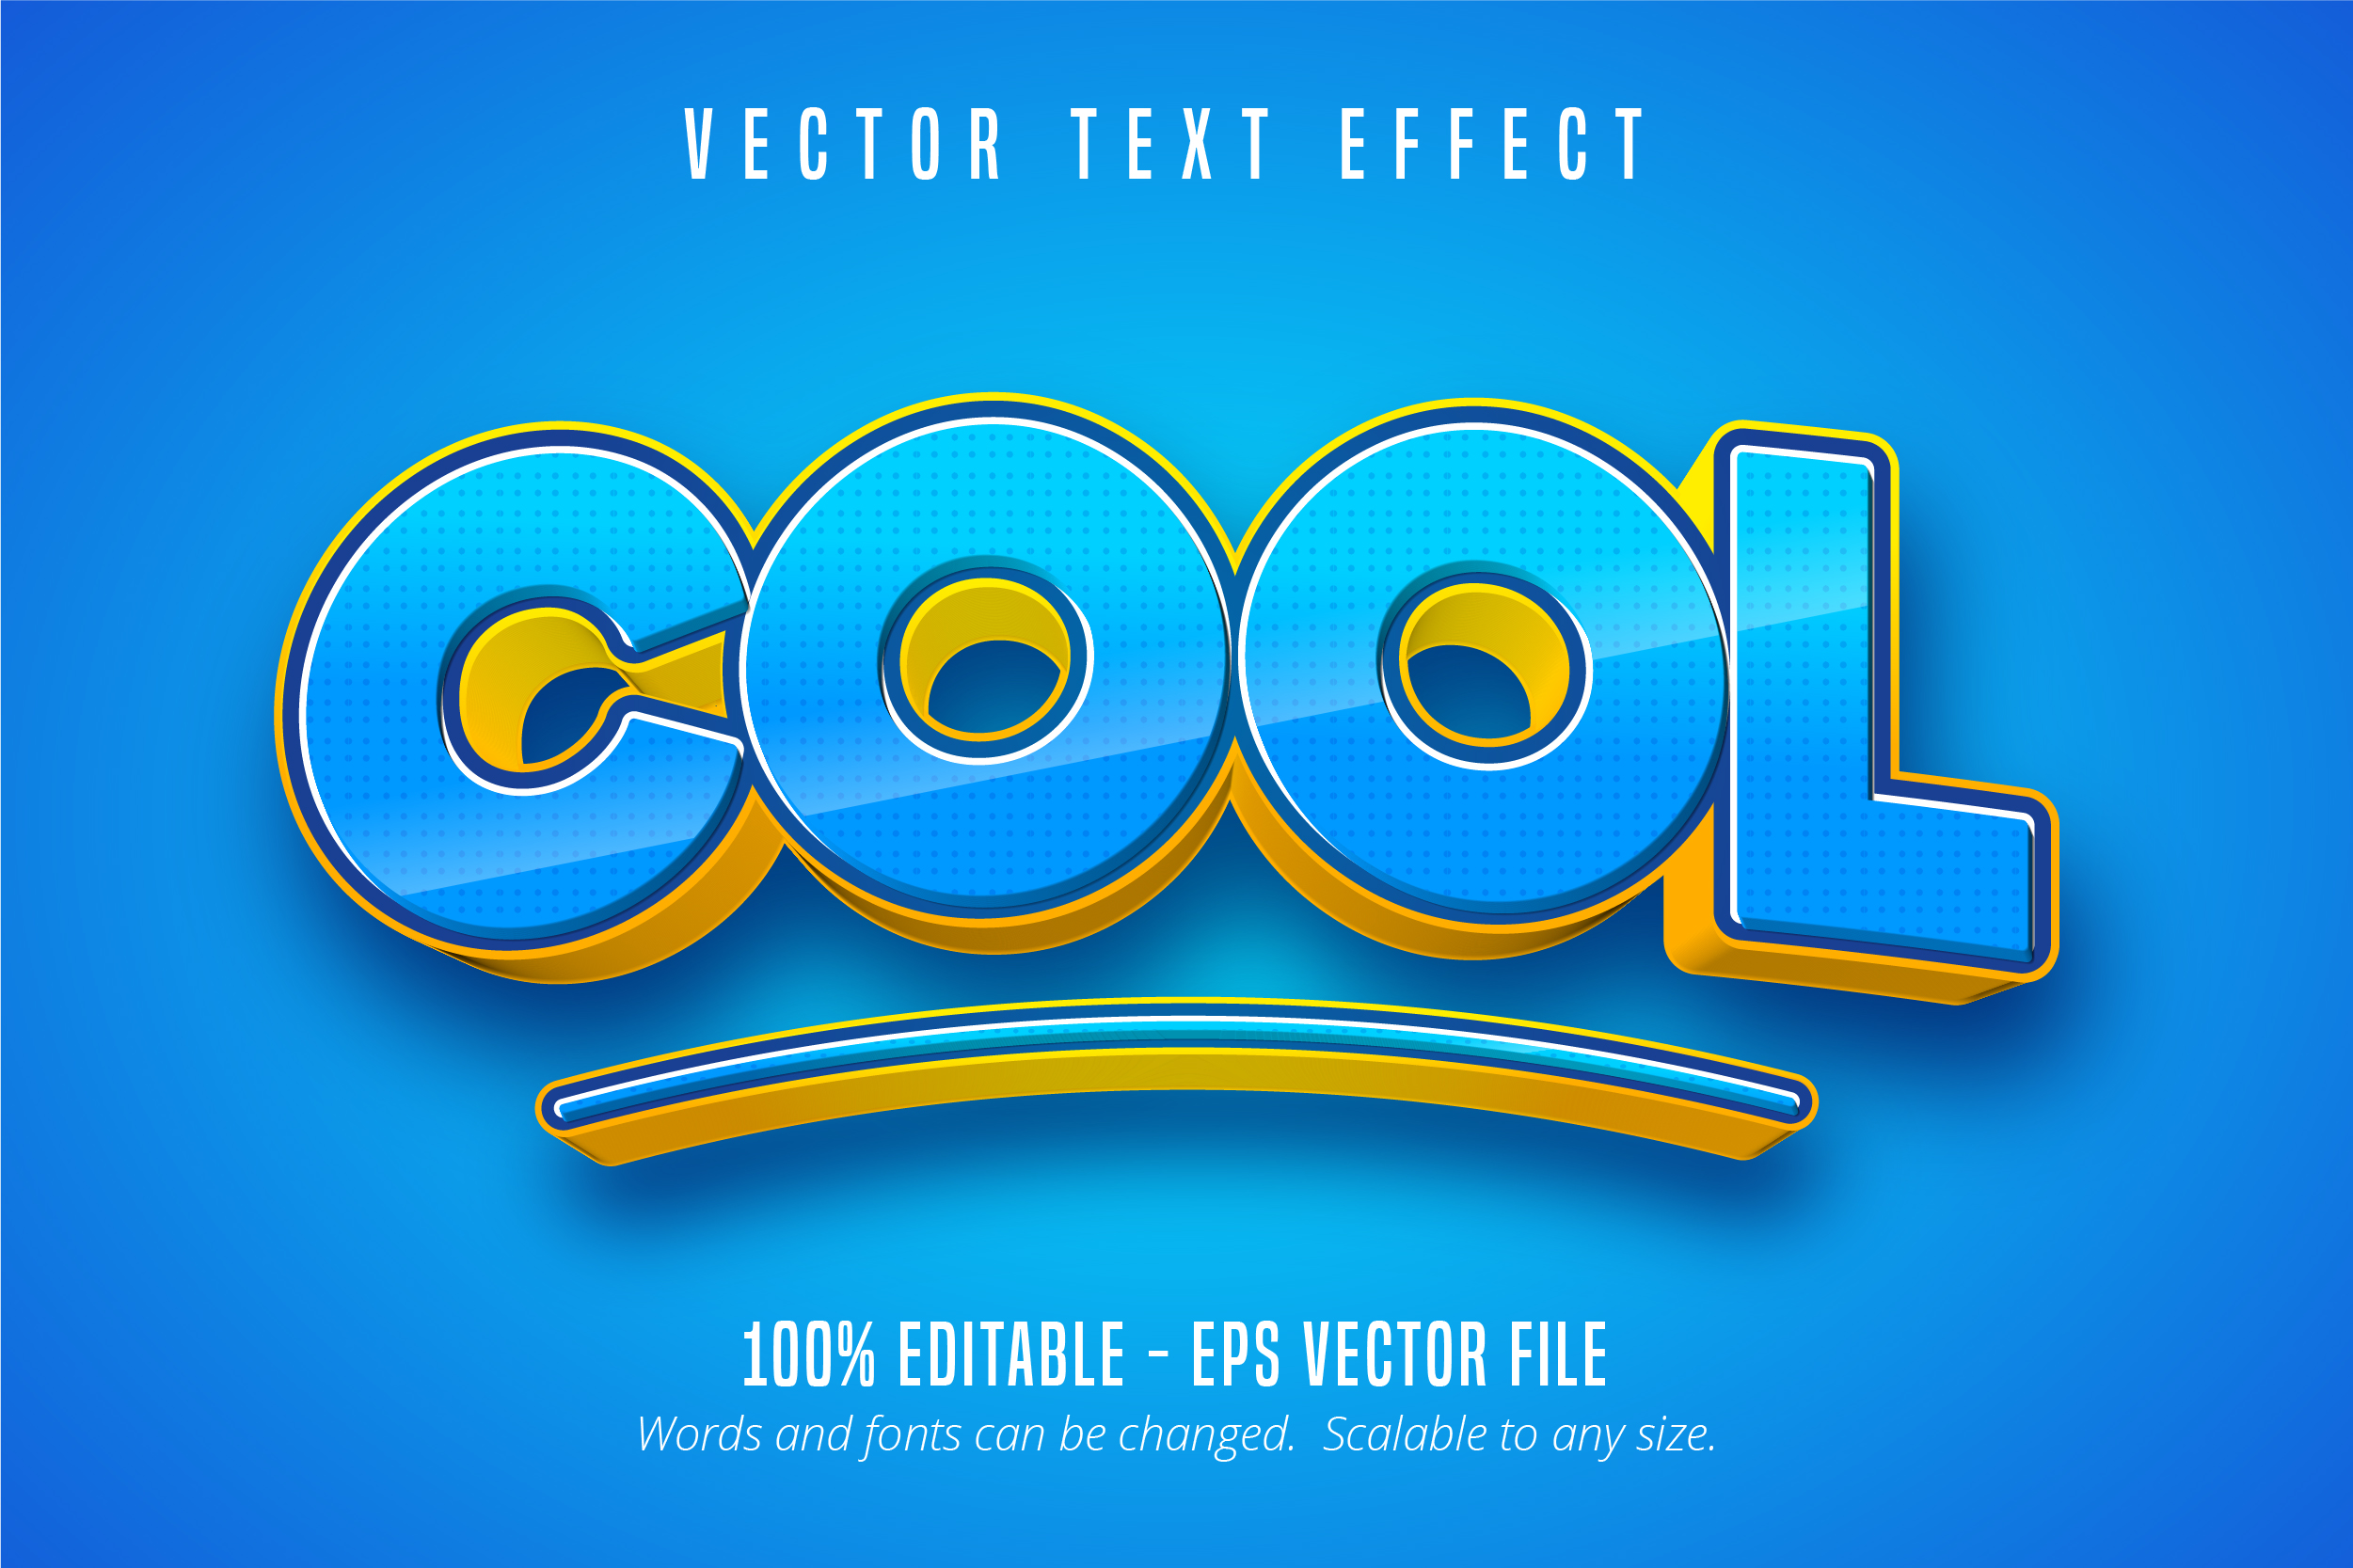 Download Free Cool Text 3d Editable Text Effect Graphic By Mustafa Beksen for Cricut Explore, Silhouette and other cutting machines.